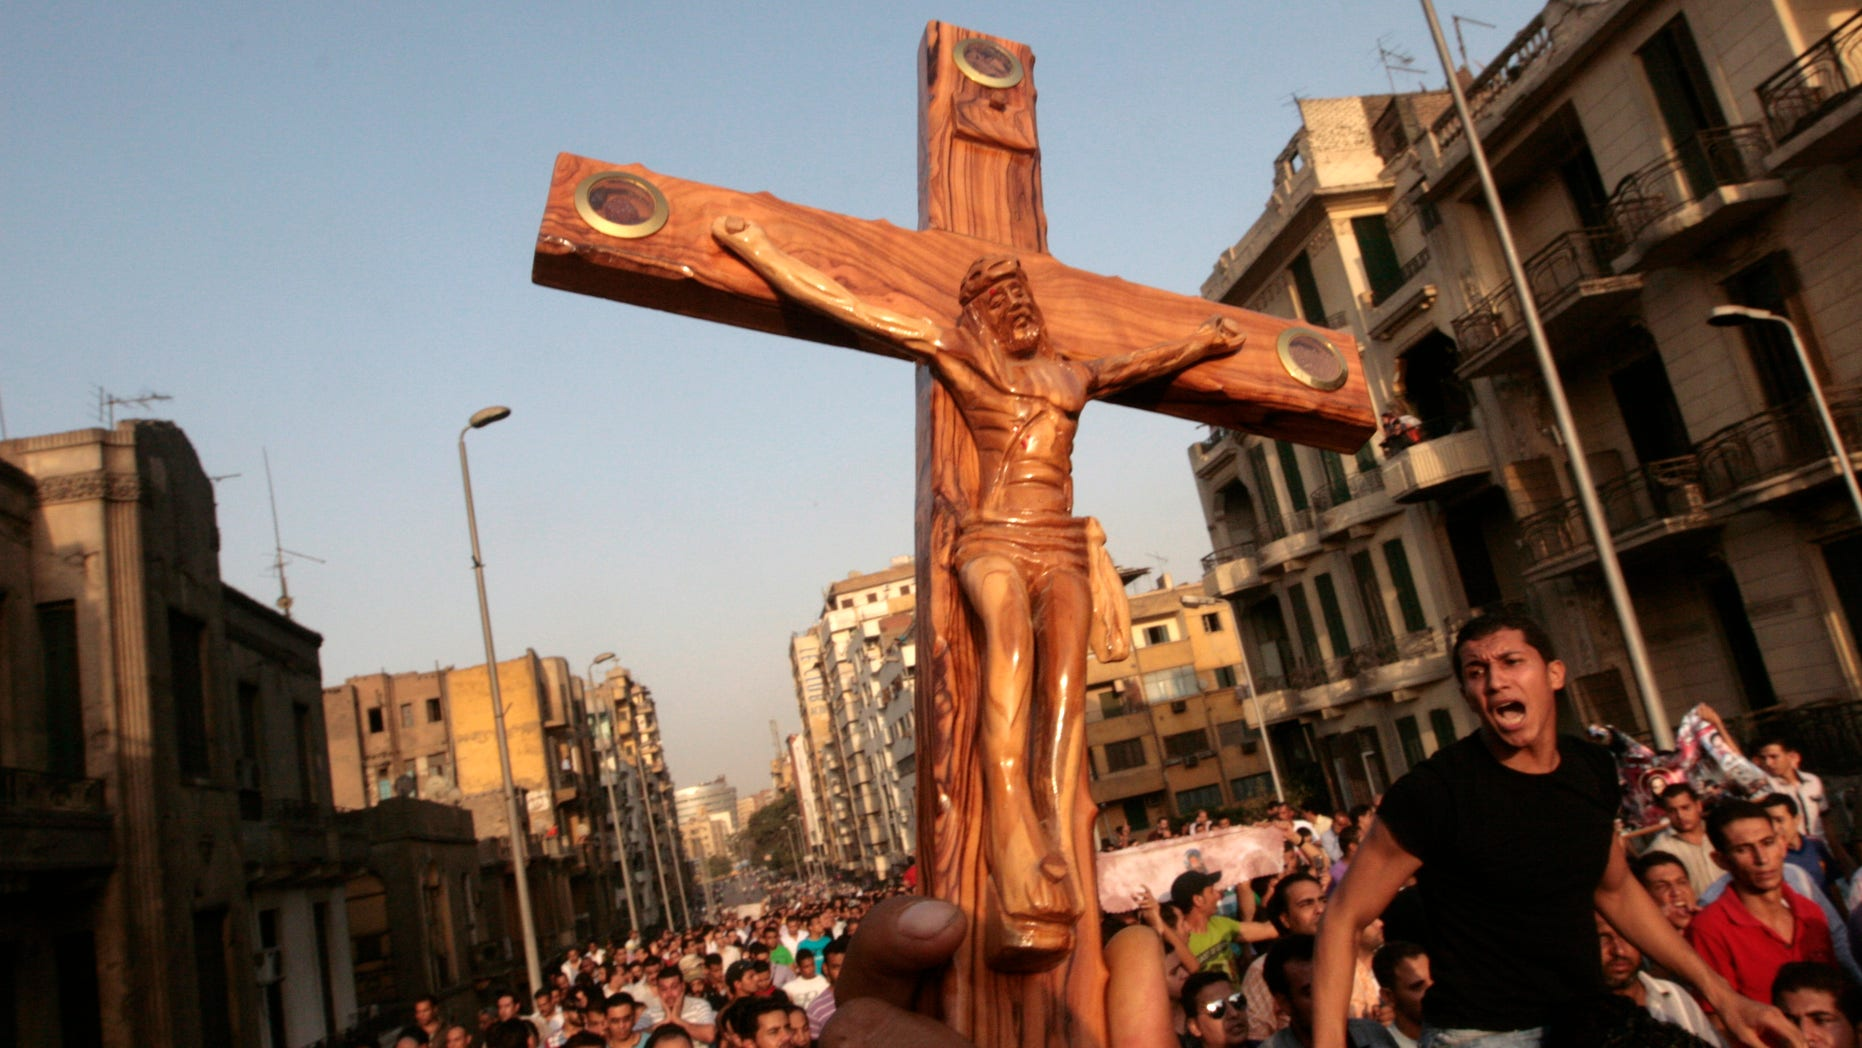 Angry Egyptian Christians protest outside St. Mark's Cathedral against the military ruling council in Cairo Egypt, Monday, Oct. 10, 2011 a day after at least 24 people were killed when Christians, angered by a recent church attack, clashed Sunday night with Muslims and security forces outside the state television building in central Cairo.